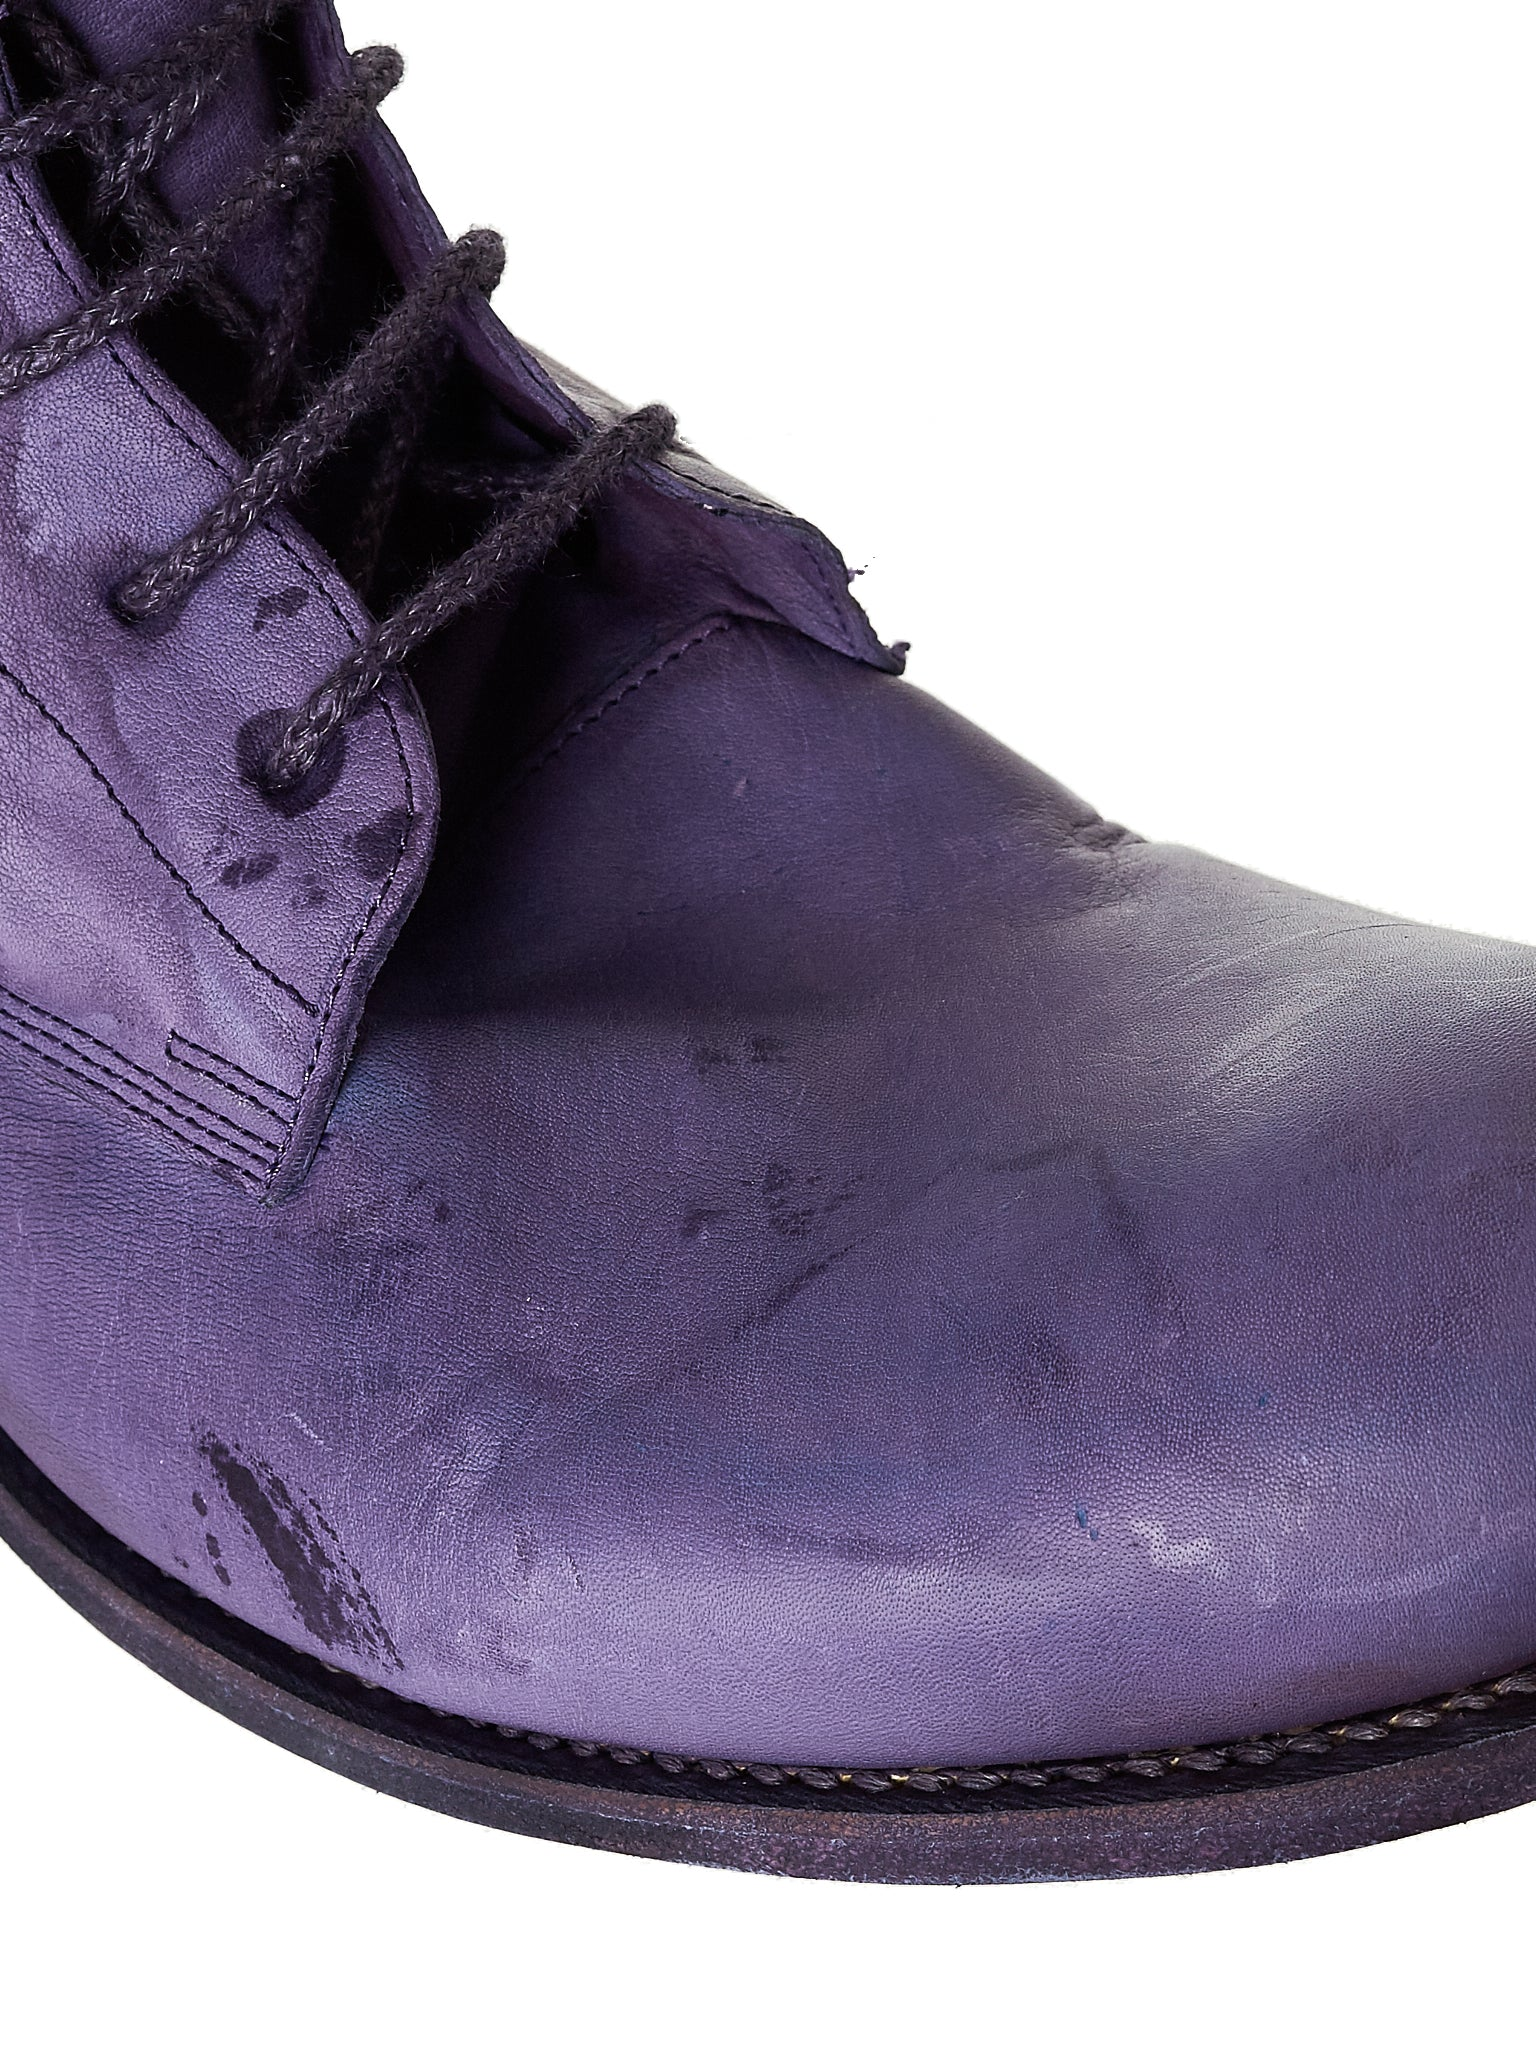 A Diciannoveventitre Kangaroo Leather Boot - Hlorenzo Detail 4